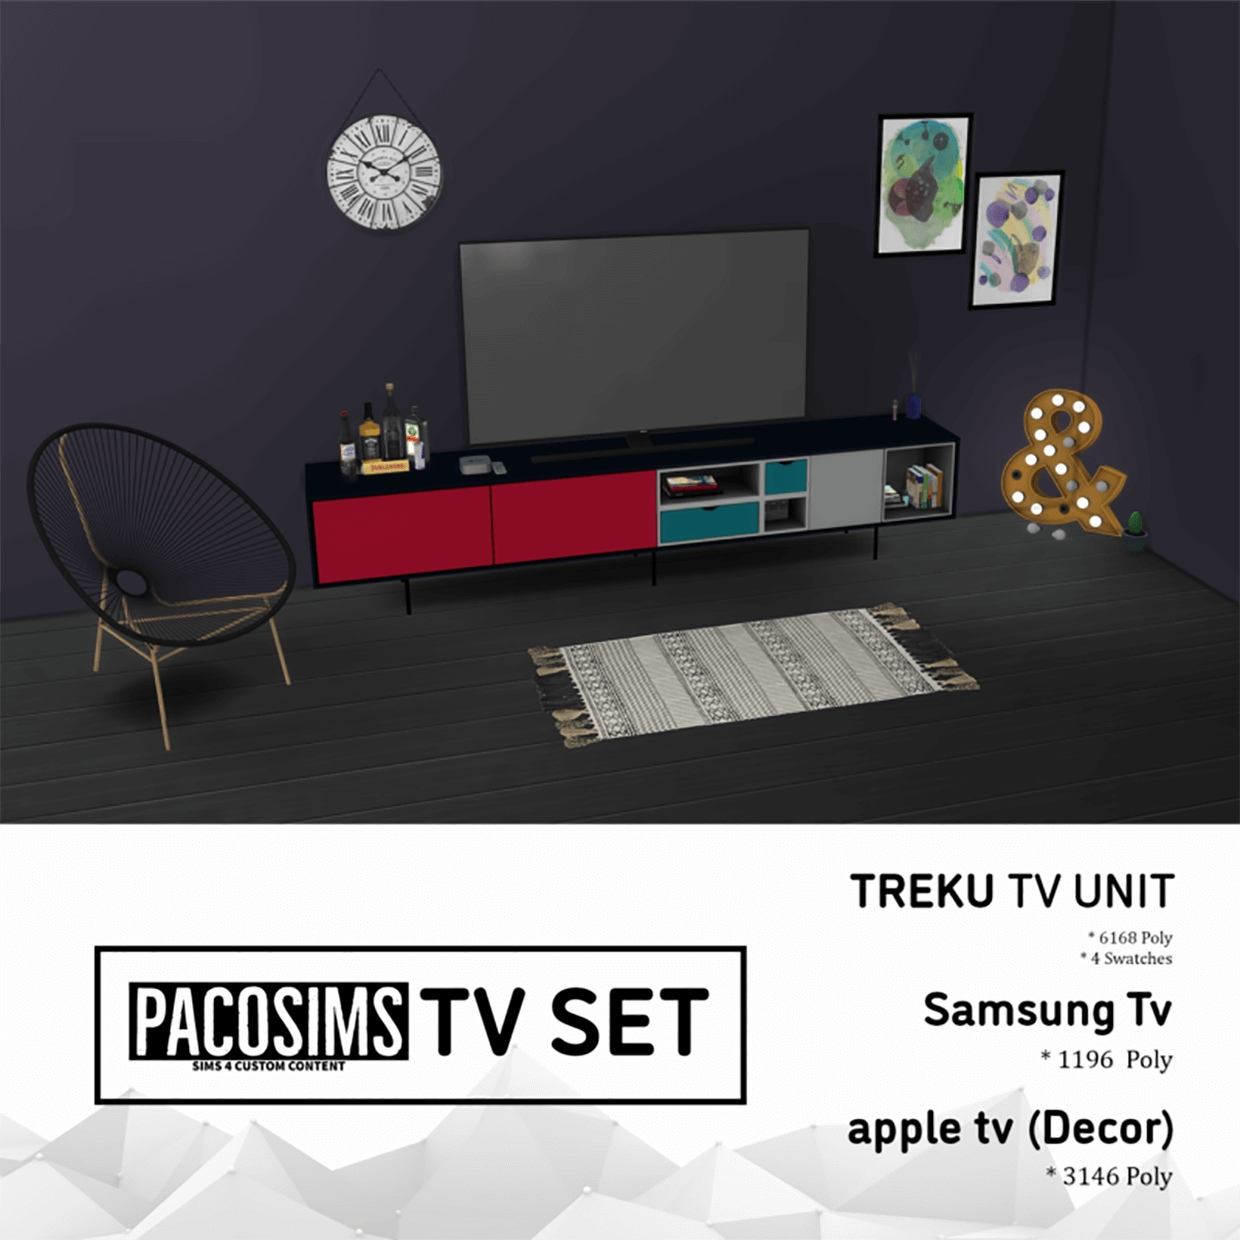 Tv set by PacoSims